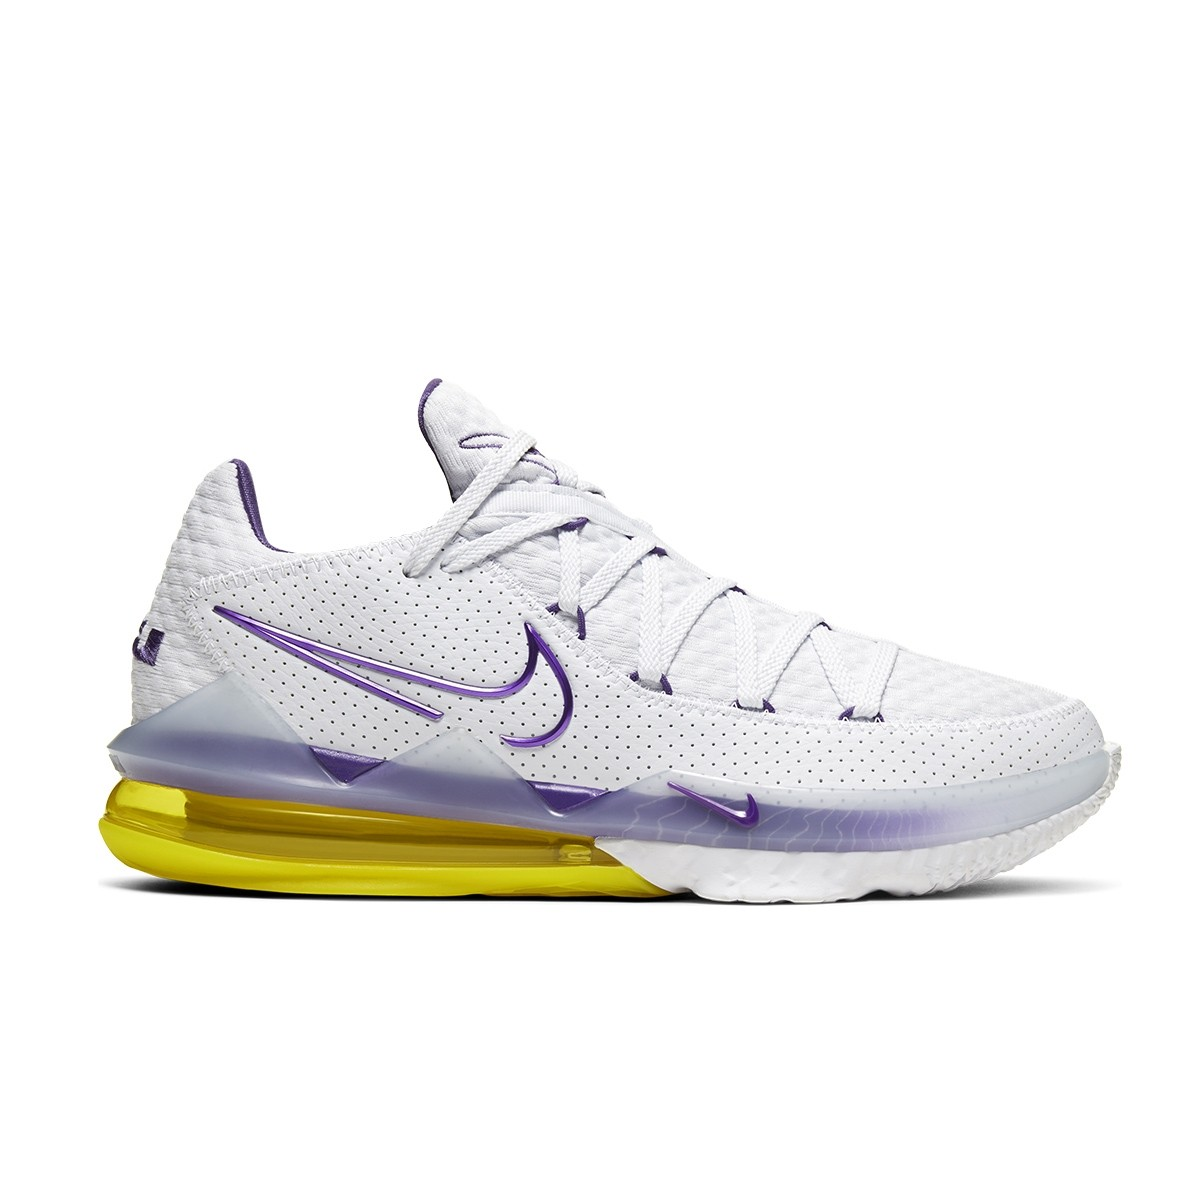 Nike Lebron XVII Low 'Lakers'